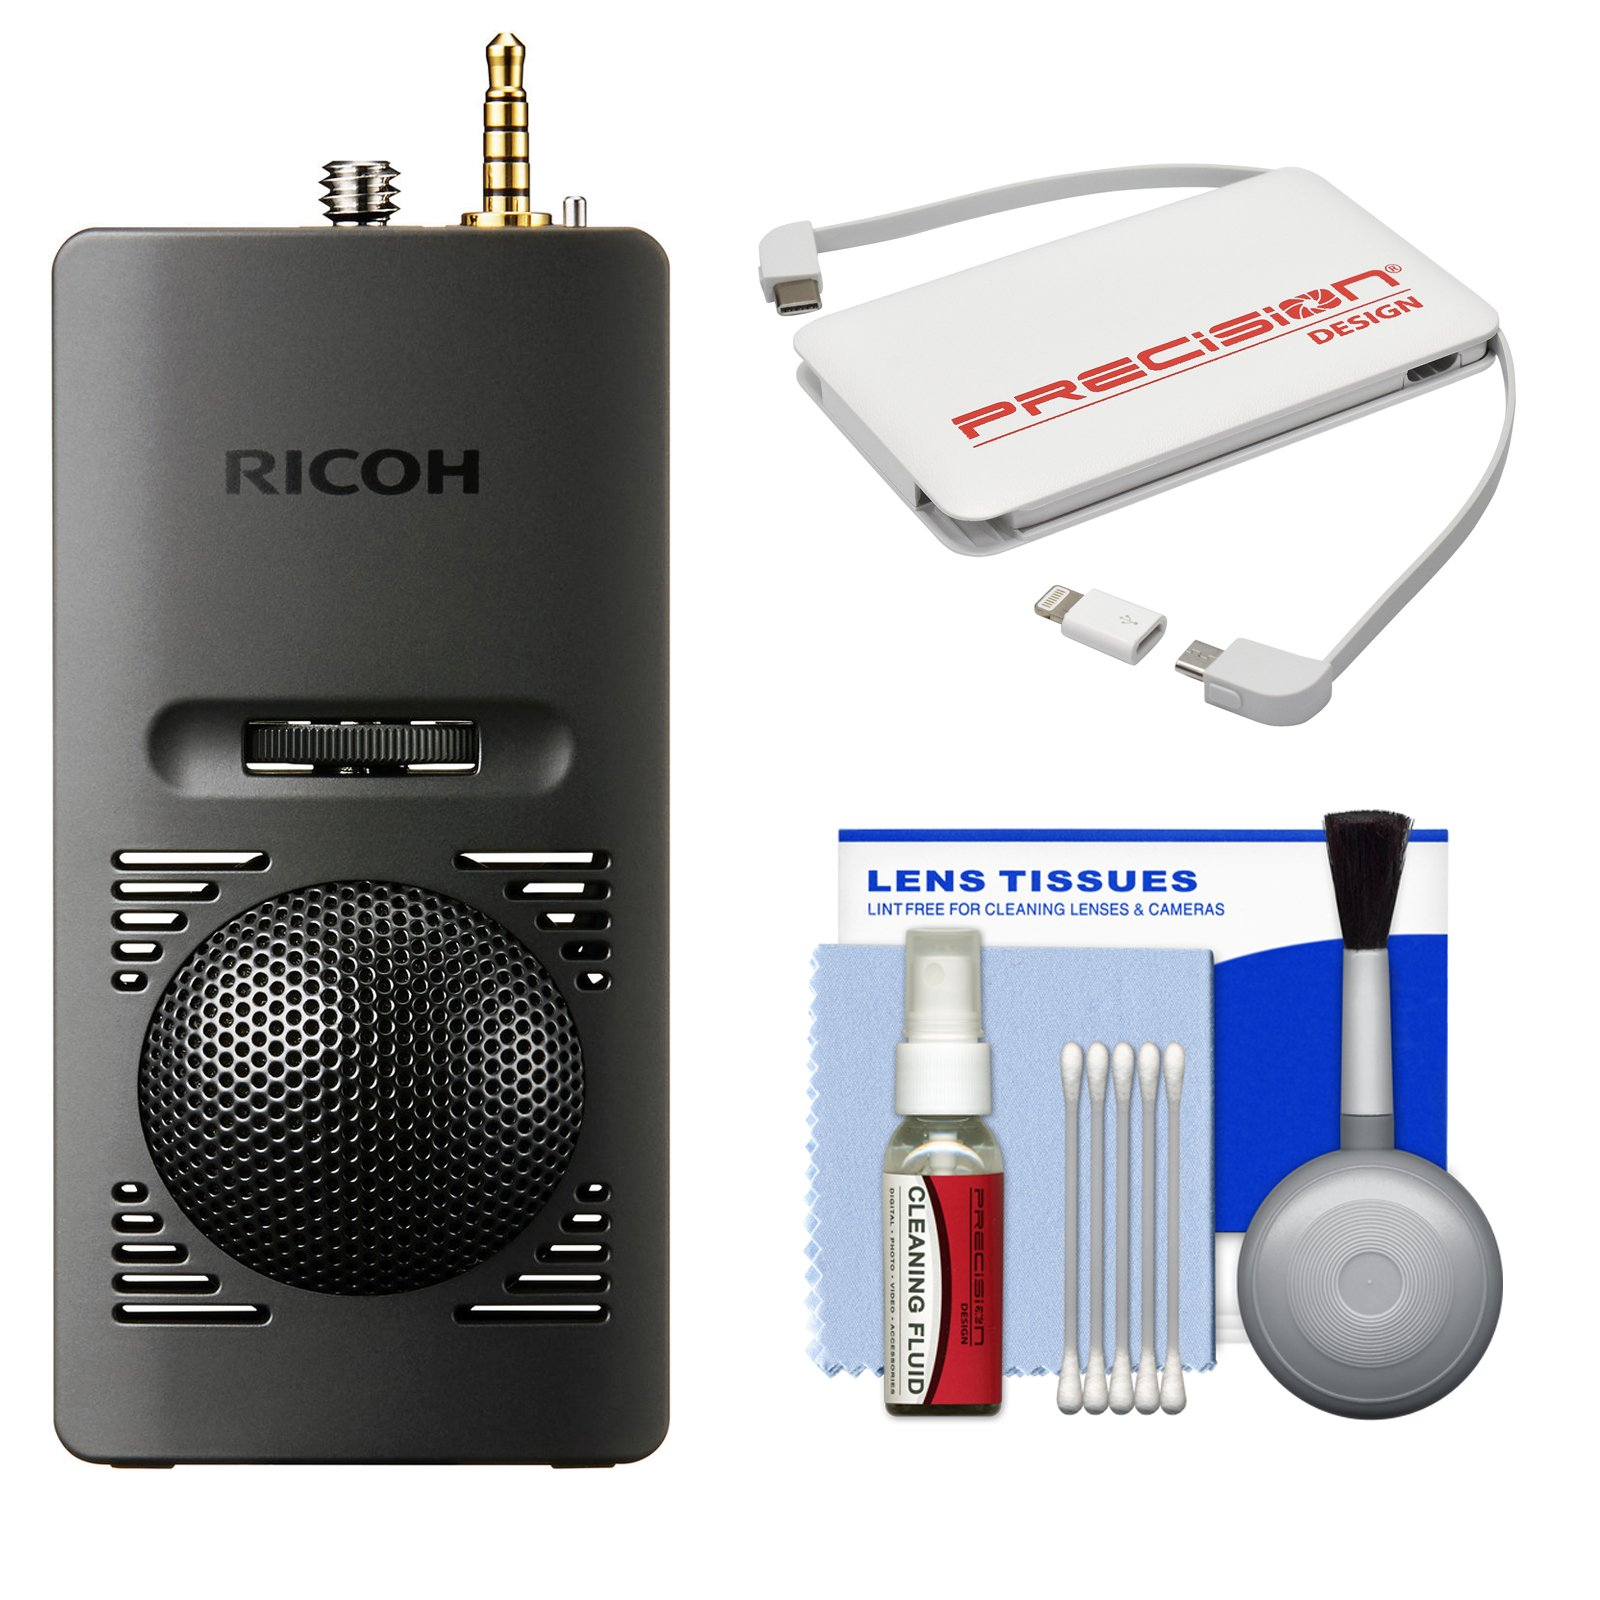 Ricoh TA-1 3D 360 Degree Microphone for Theta V Camera with Portable Charger + Cleaning Kit by Ricoh